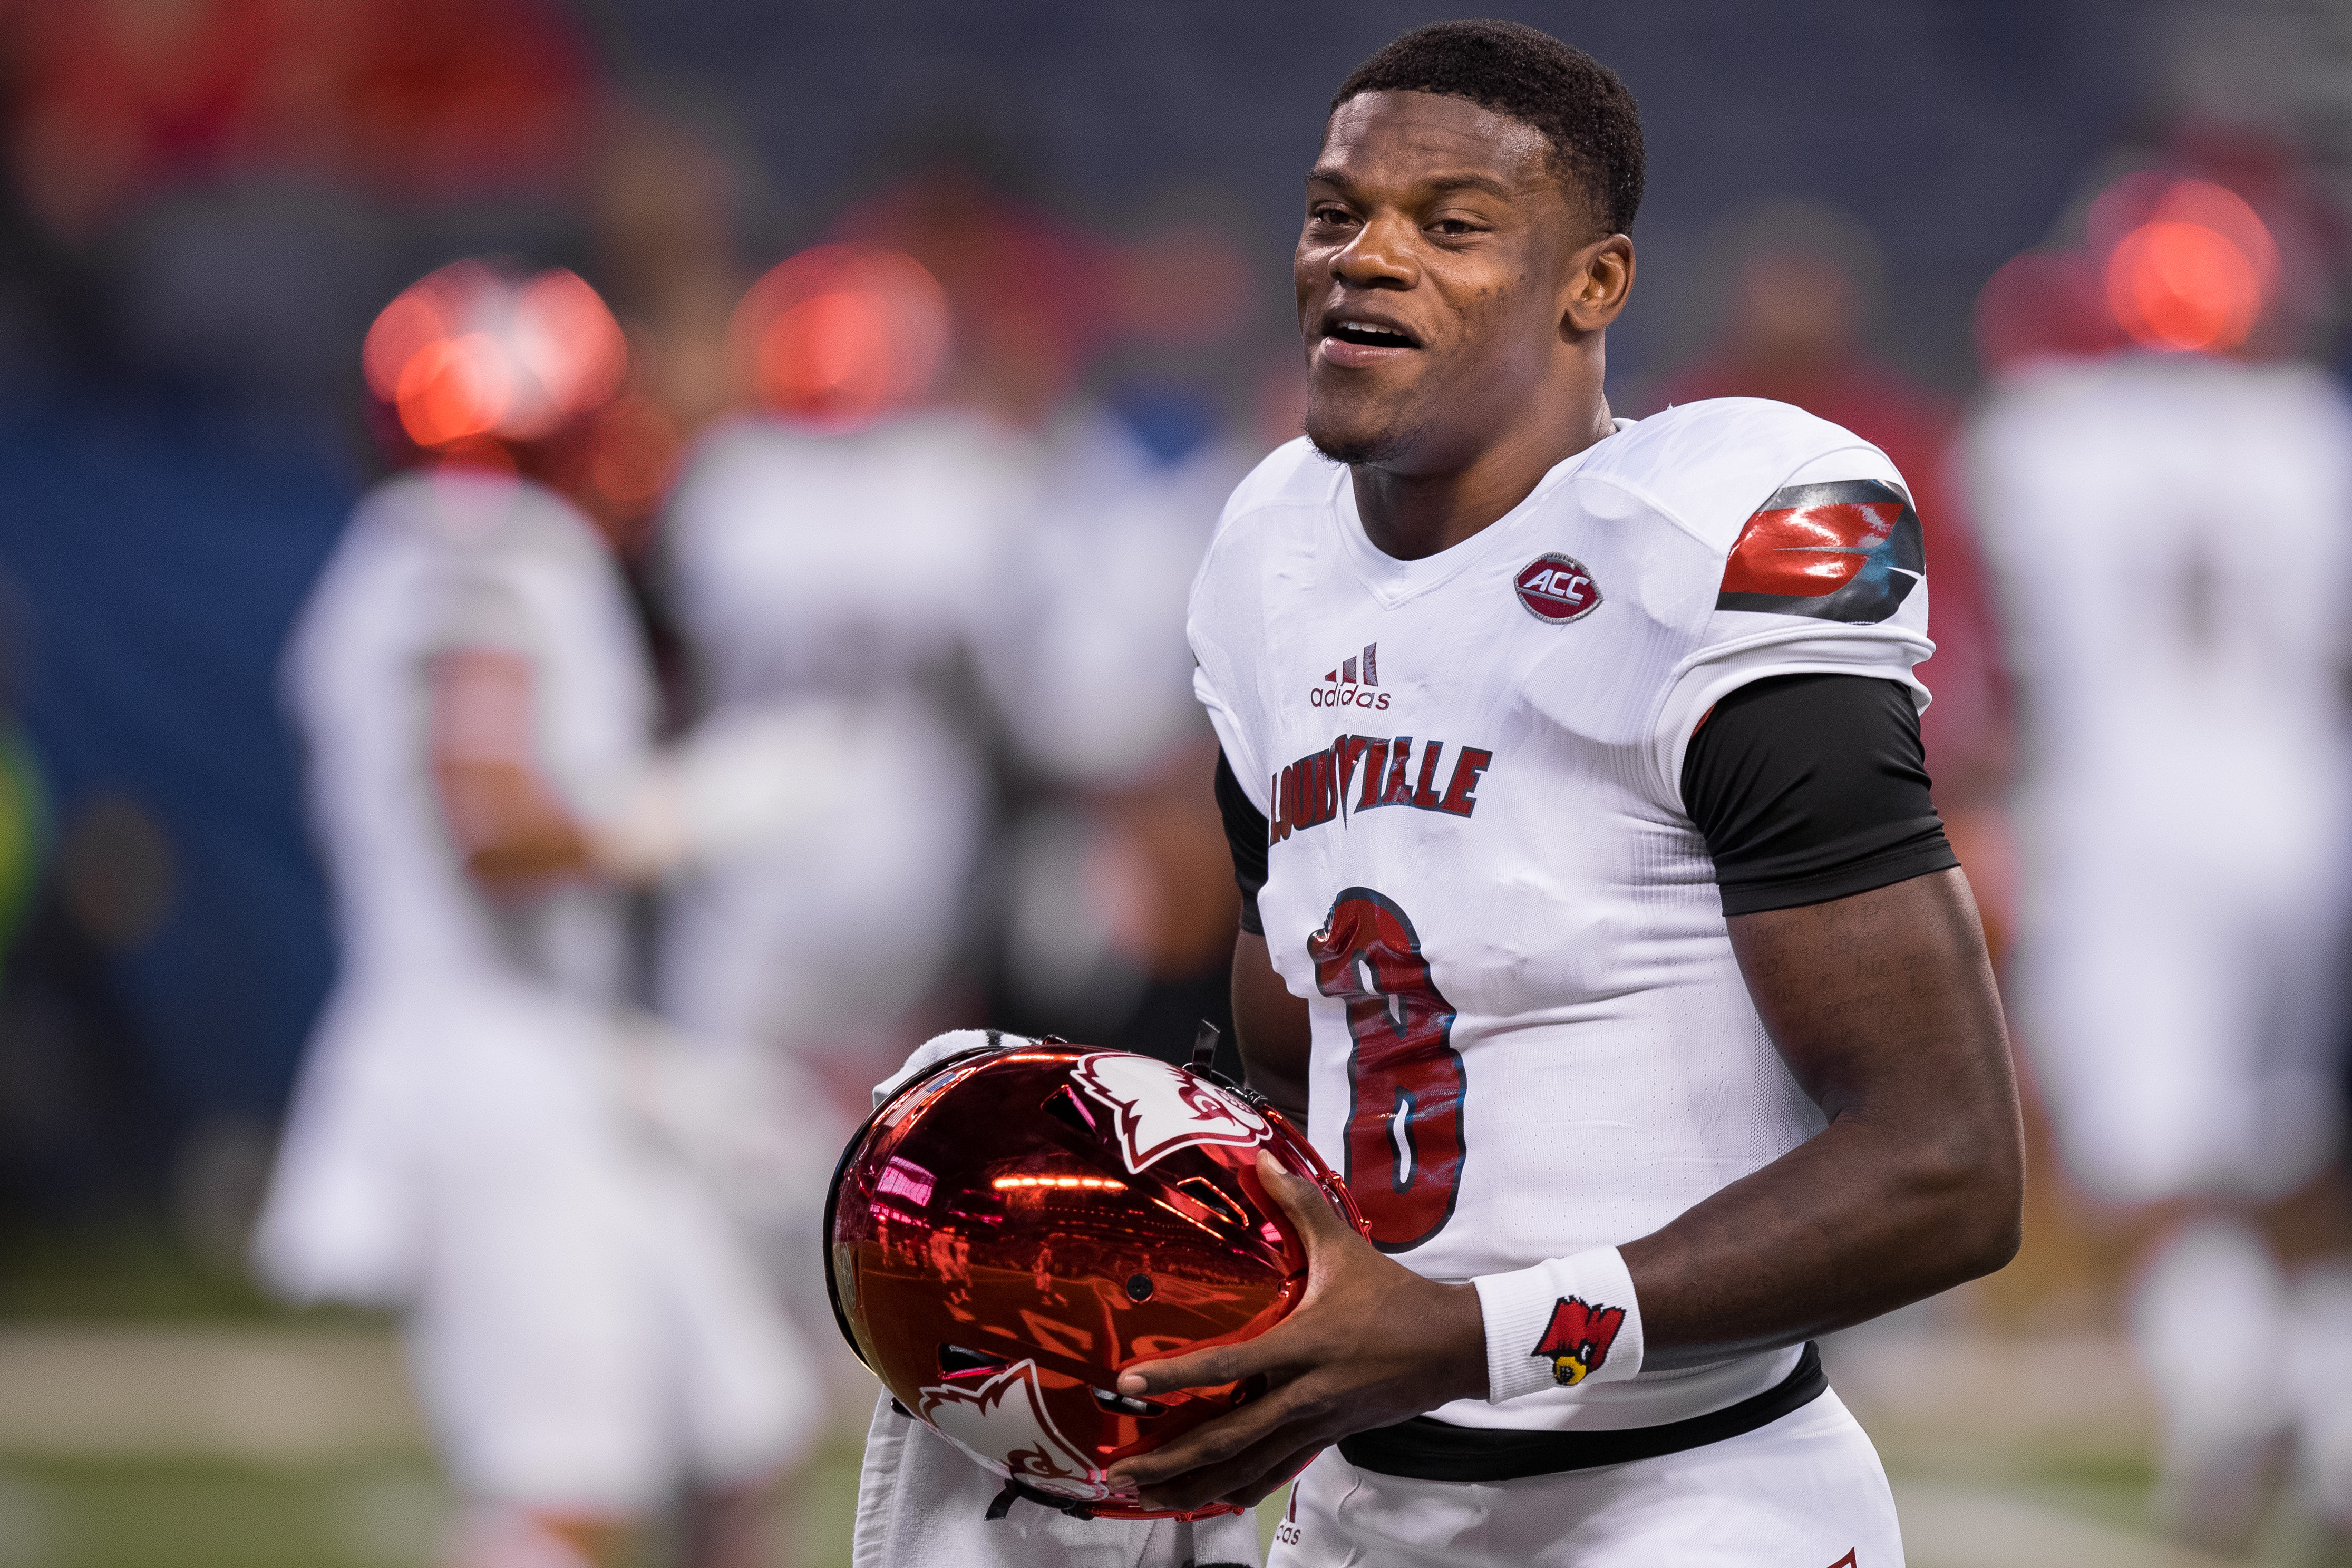 Lamar Jackson Could Change The Nfl If He Gets The Chance